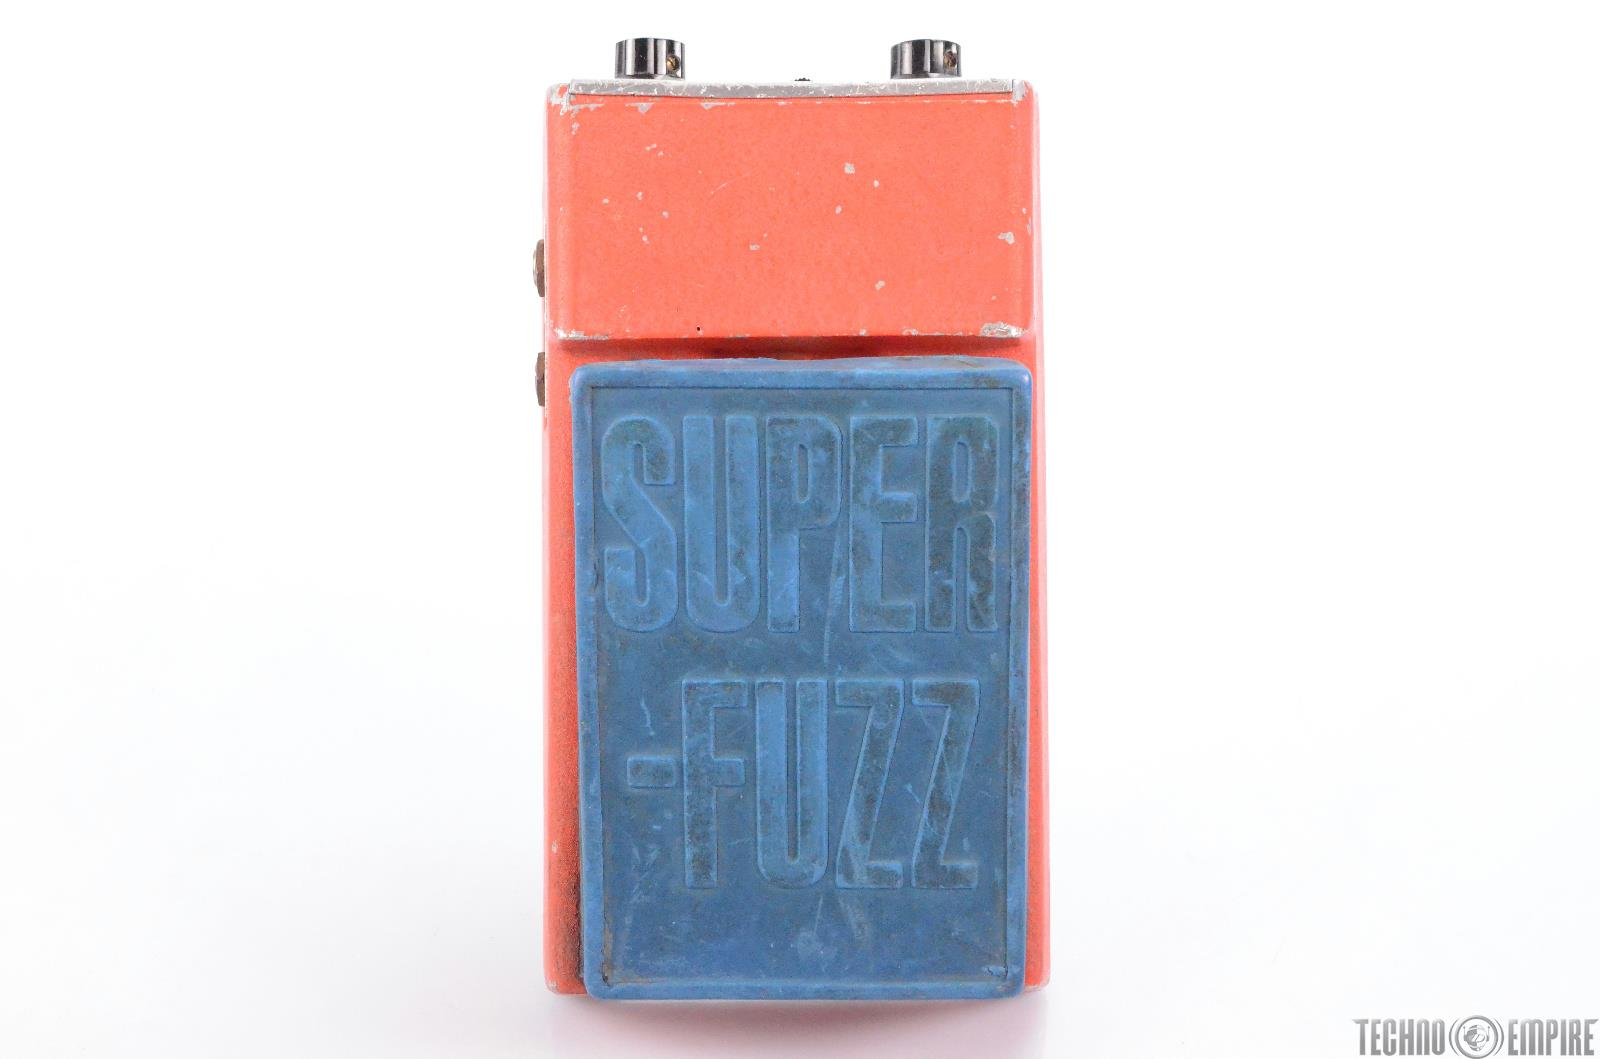 Vintage Univox Shin-ei Super Fuzz Guitar Distortion Effect Pedal Blue Red #30353